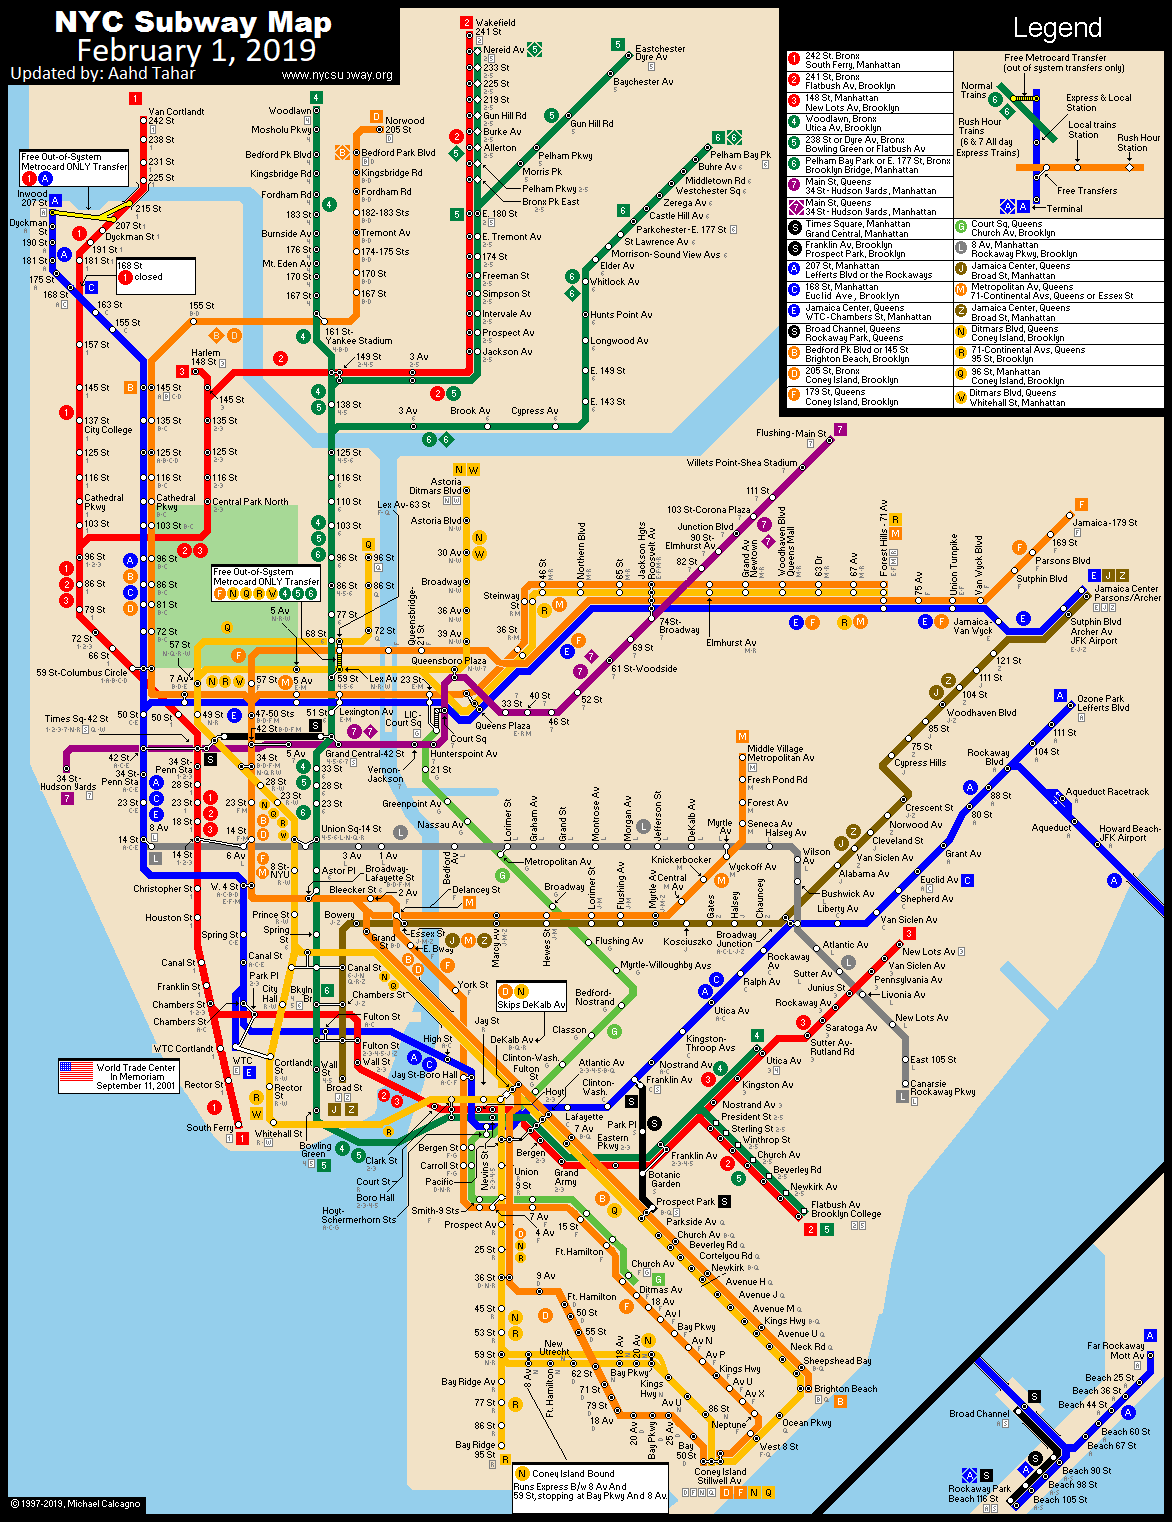 Subway Map Nyc 2014.Www Nycsubway Org New York City Subway Route Map By Michael